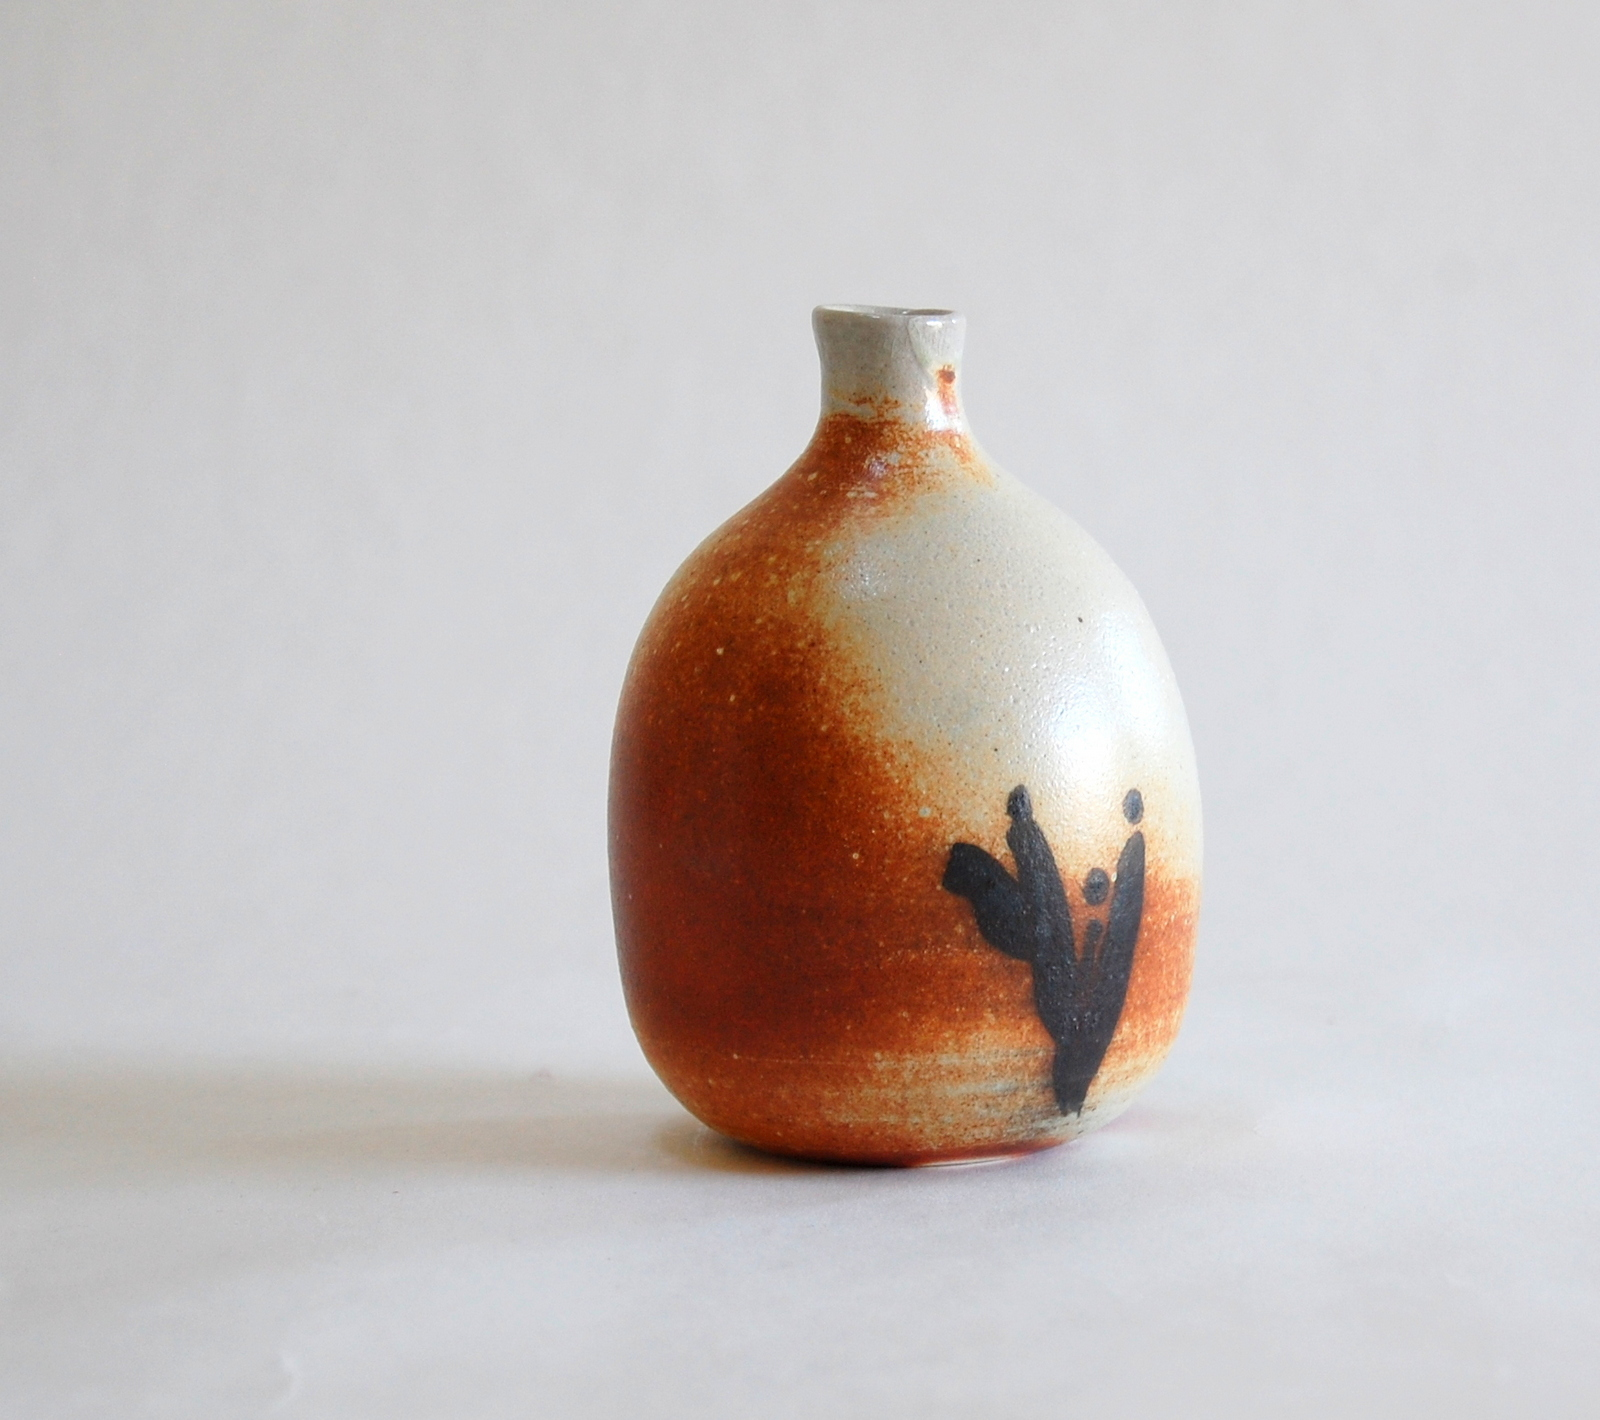 Small 4 inch high soda fired bottle, white clay with black hand-painted plant design